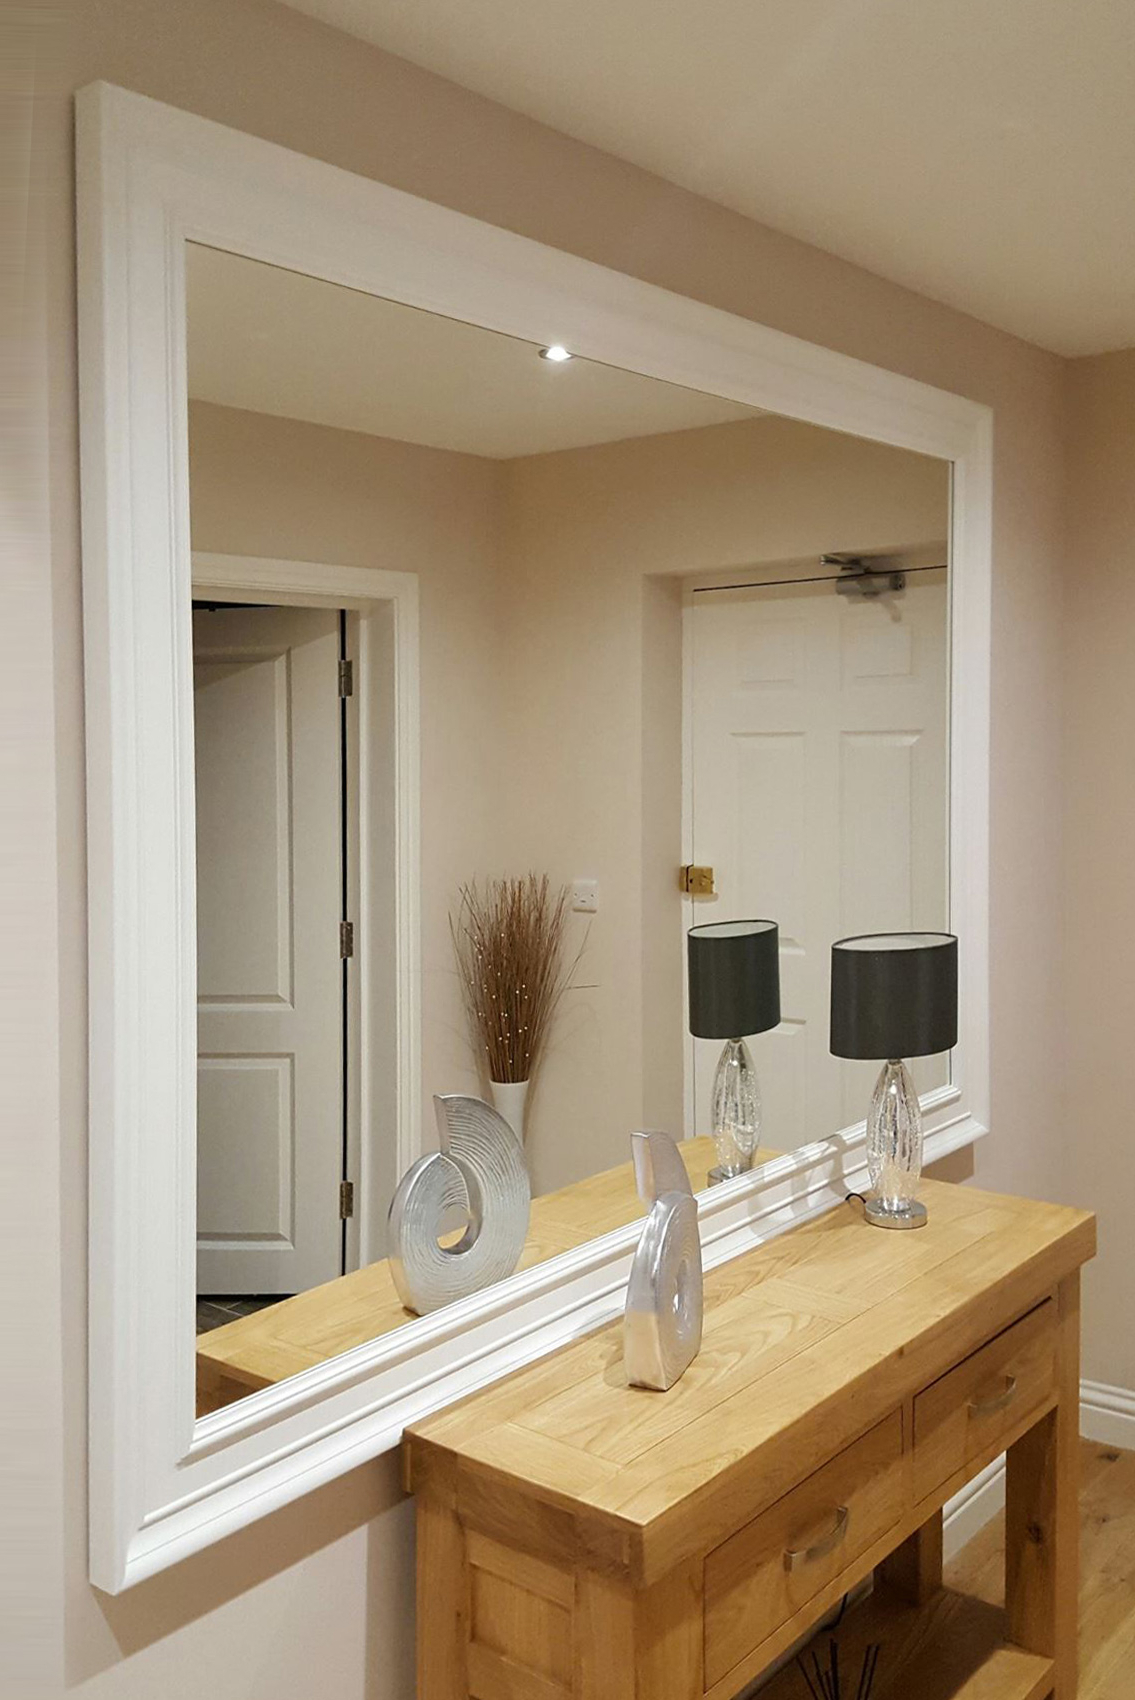 Famous Long White Wall Mirrors Pertaining To Details About Extra Large White Modern Leaner Wall Mirror New 6Ft 9 X 4Ft 9 206Cm X 145Cm (View 4 of 20)